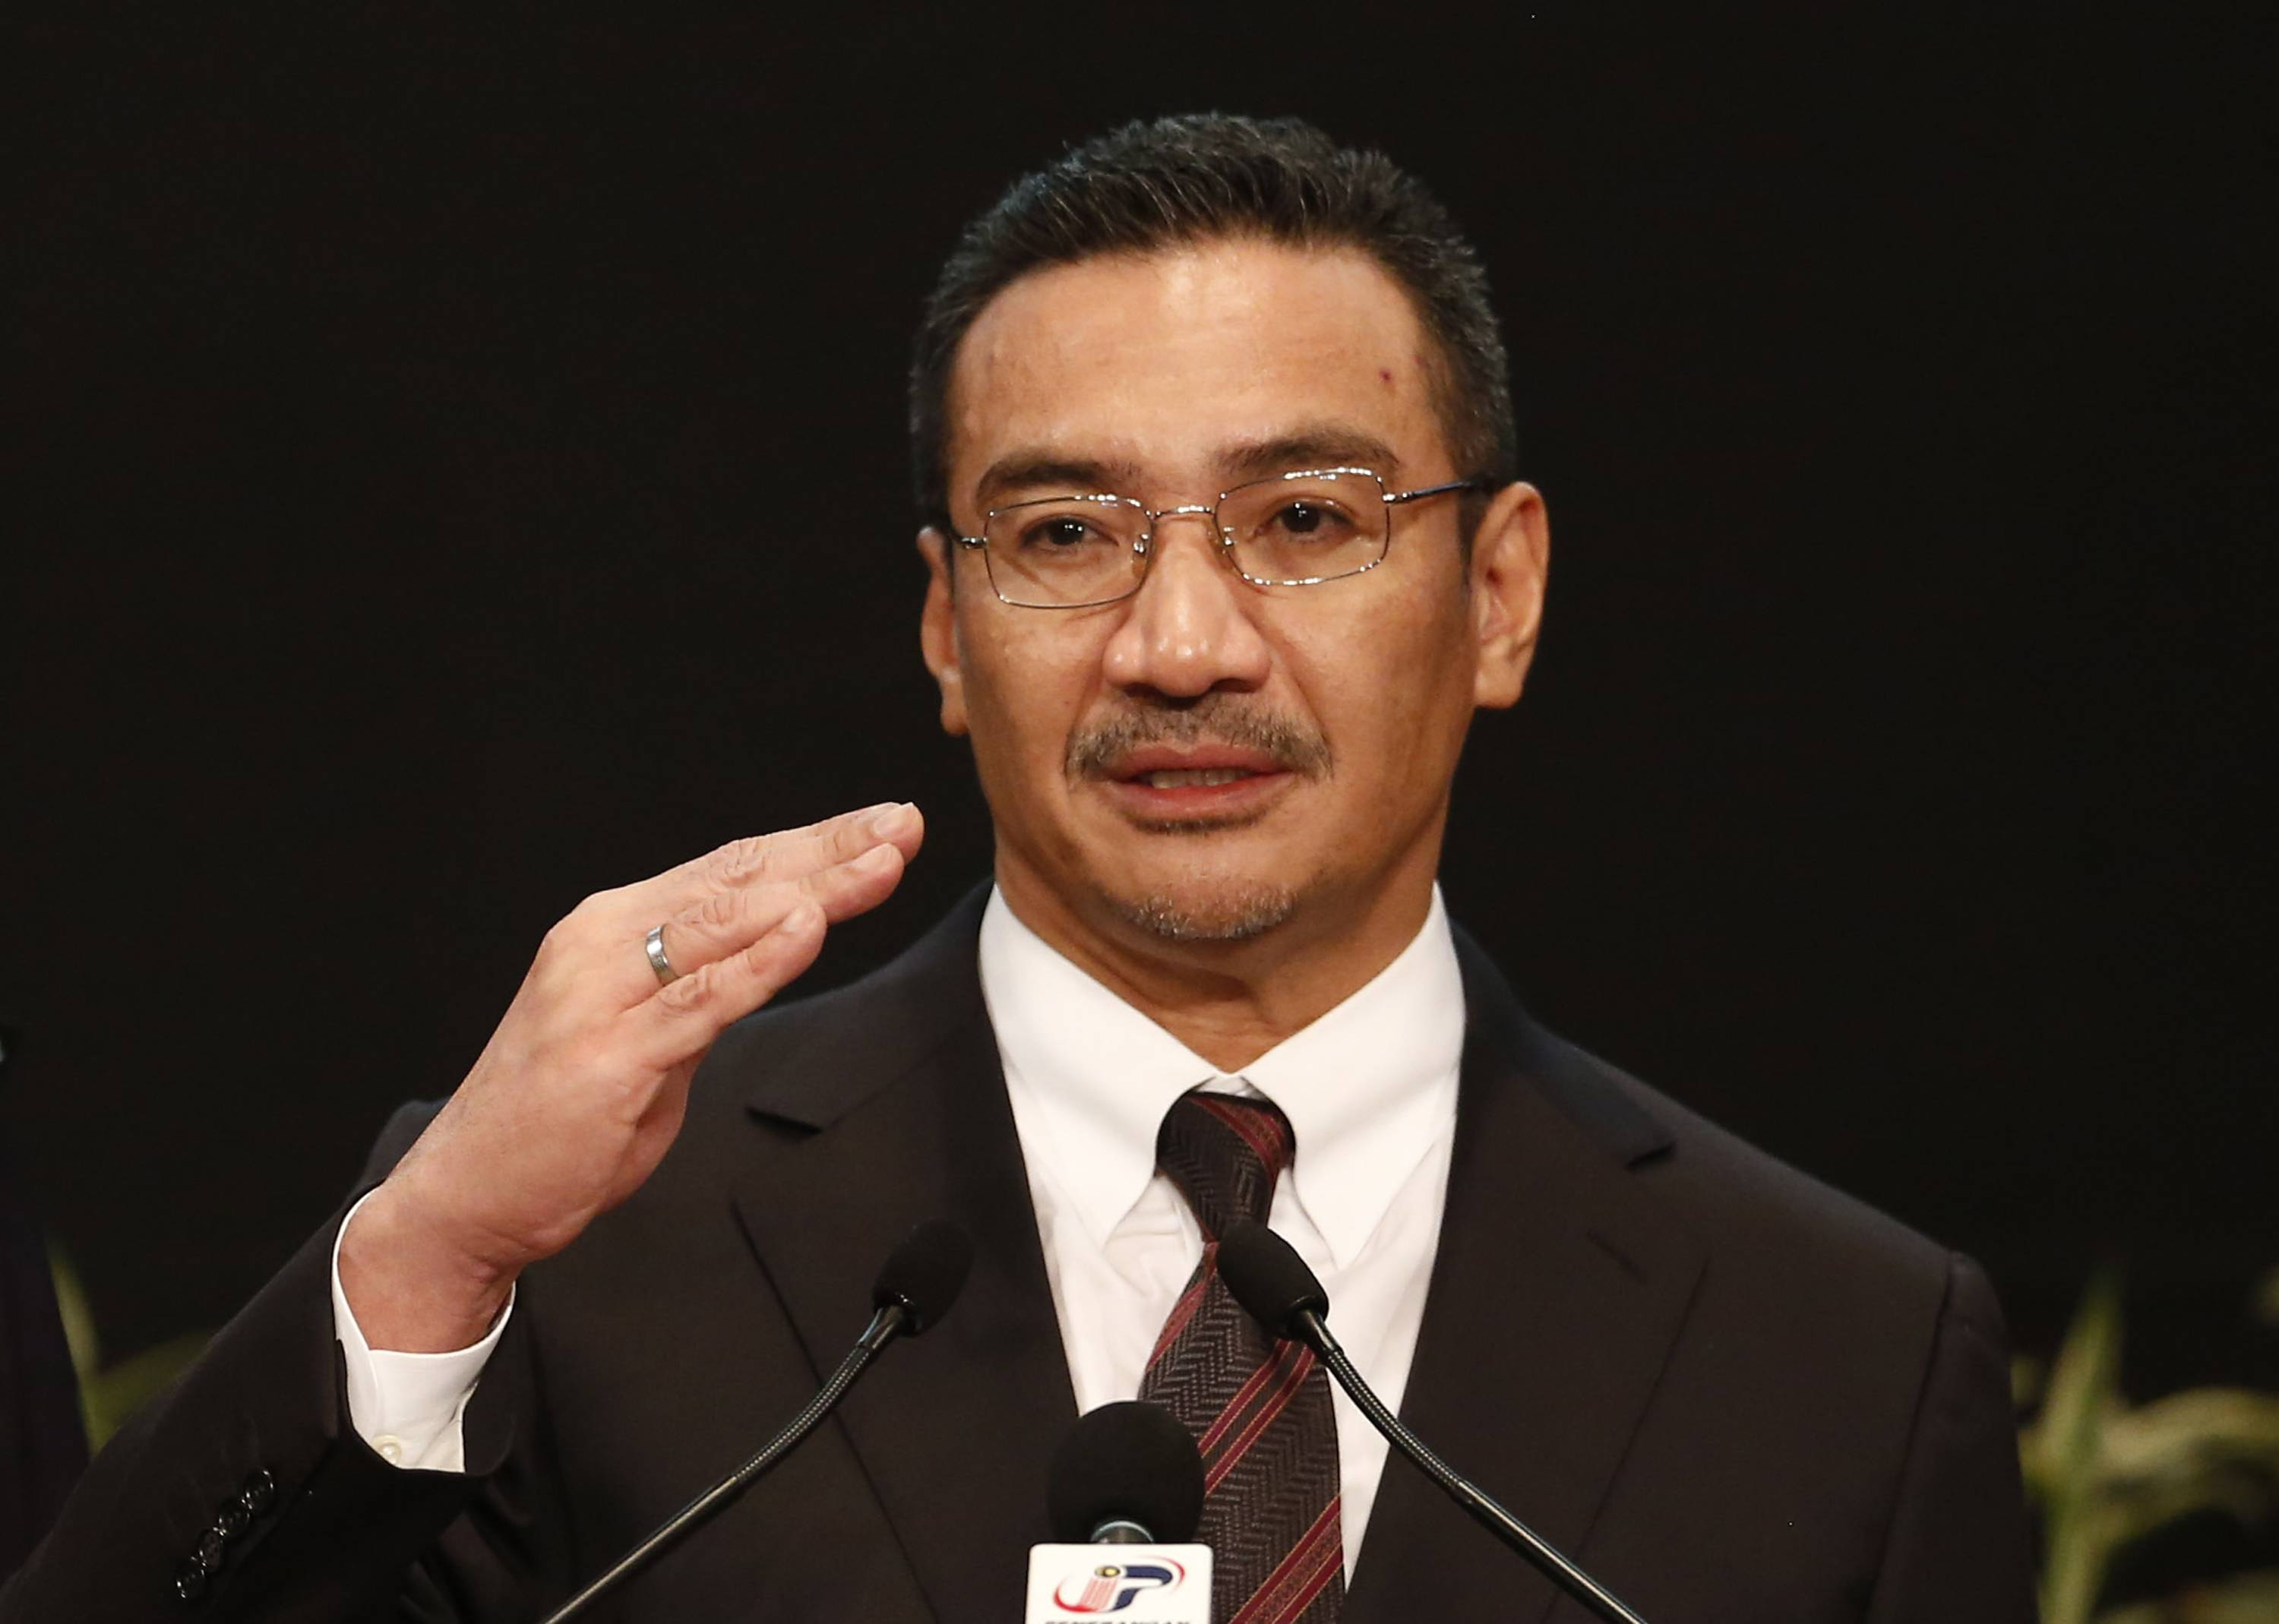 Malaysia's acting Transport Minister Hishammuddin Hussein answers a reporter's questions Tuesday during a news conference for Malaysia Airlines Flight MH370 at Putra World Trade Centre (PWTC) in Kuala Lumpur, Malaysia. China demanded that Malaysia turn over the satellite data used to conclude that a Malaysia Airlines jetliner had crashed in the southern Indian Ocean, killing everyone on board, as gale-force winds and heavy rain on Tuesday halted the search for remains of the plane.